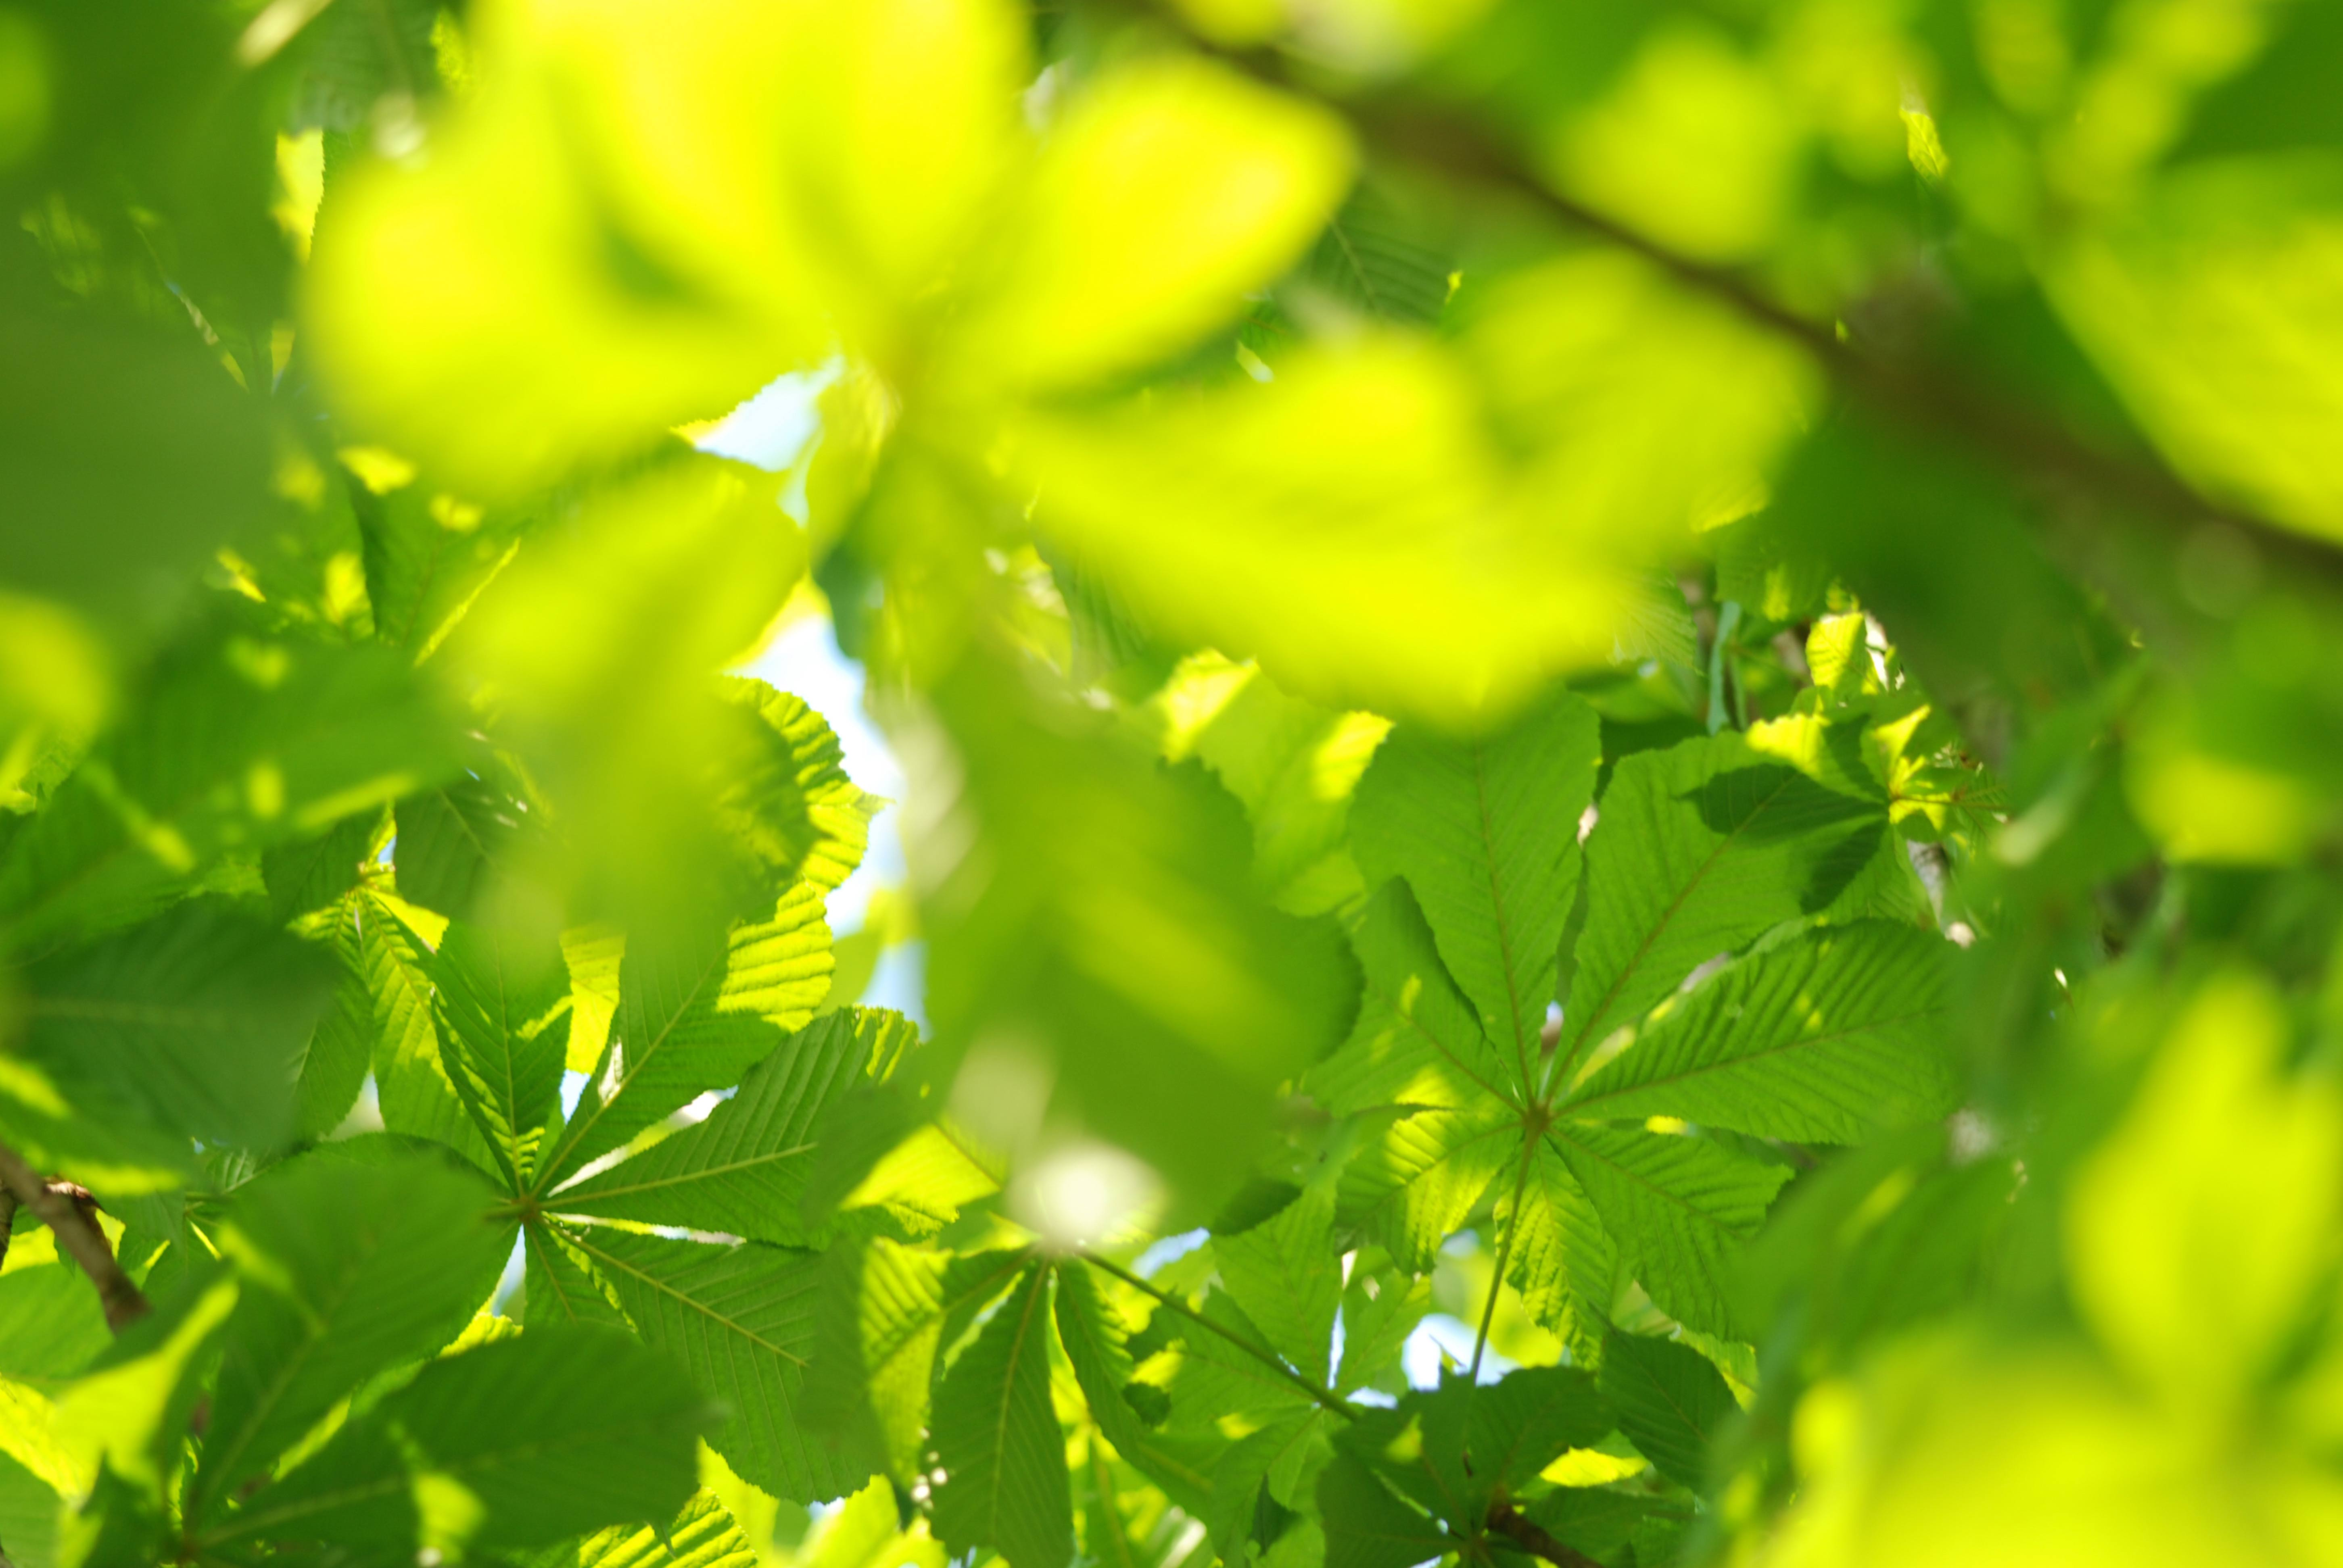 Sun lit palmately compound tree leaves